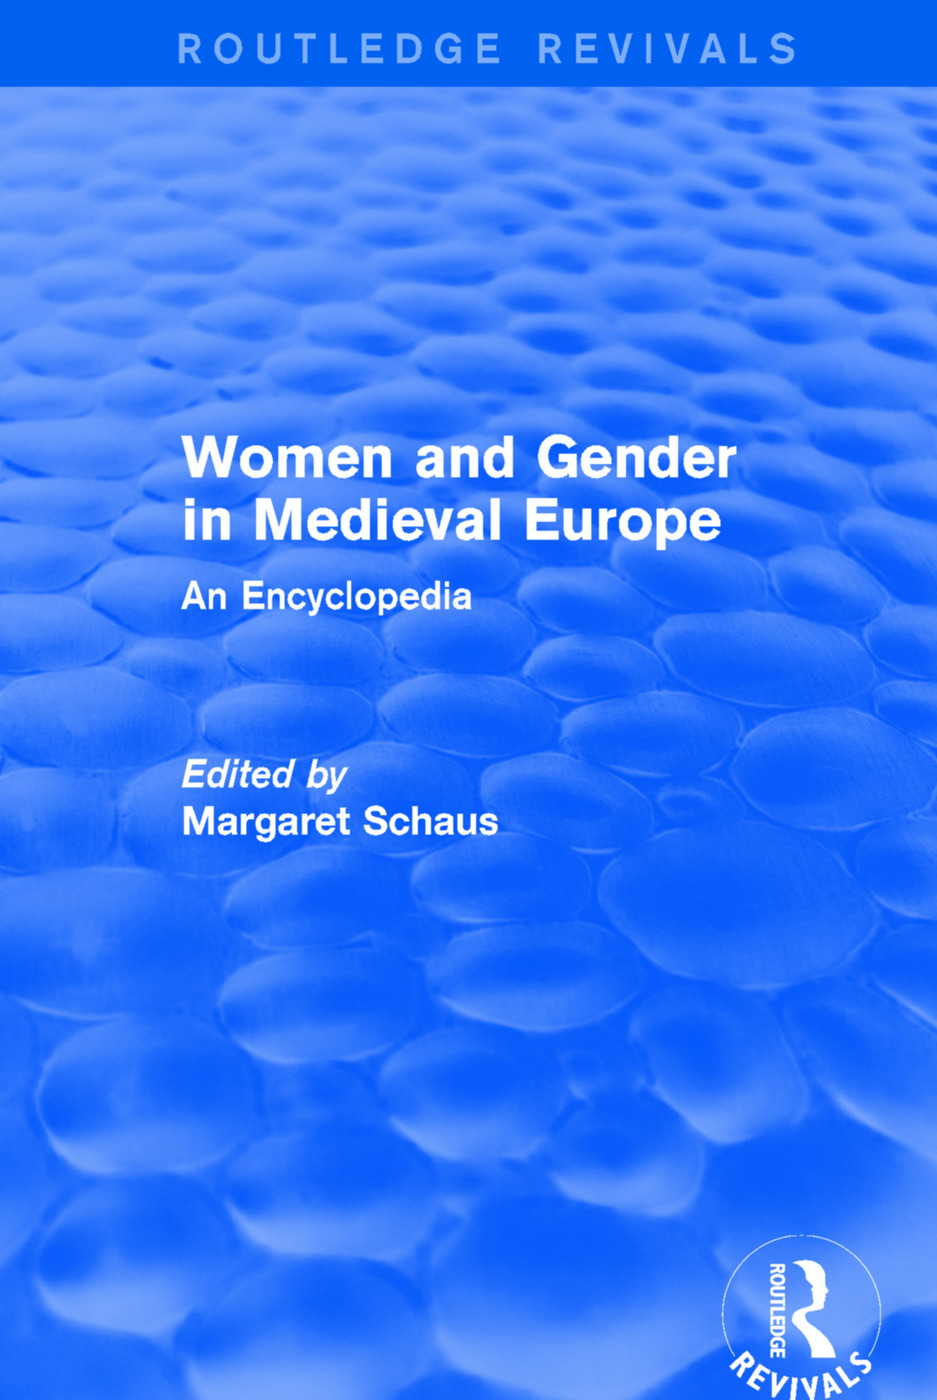 Routledge Revivals: Women and Gender in Medieval Europe (2006): An Encyclopedia book cover